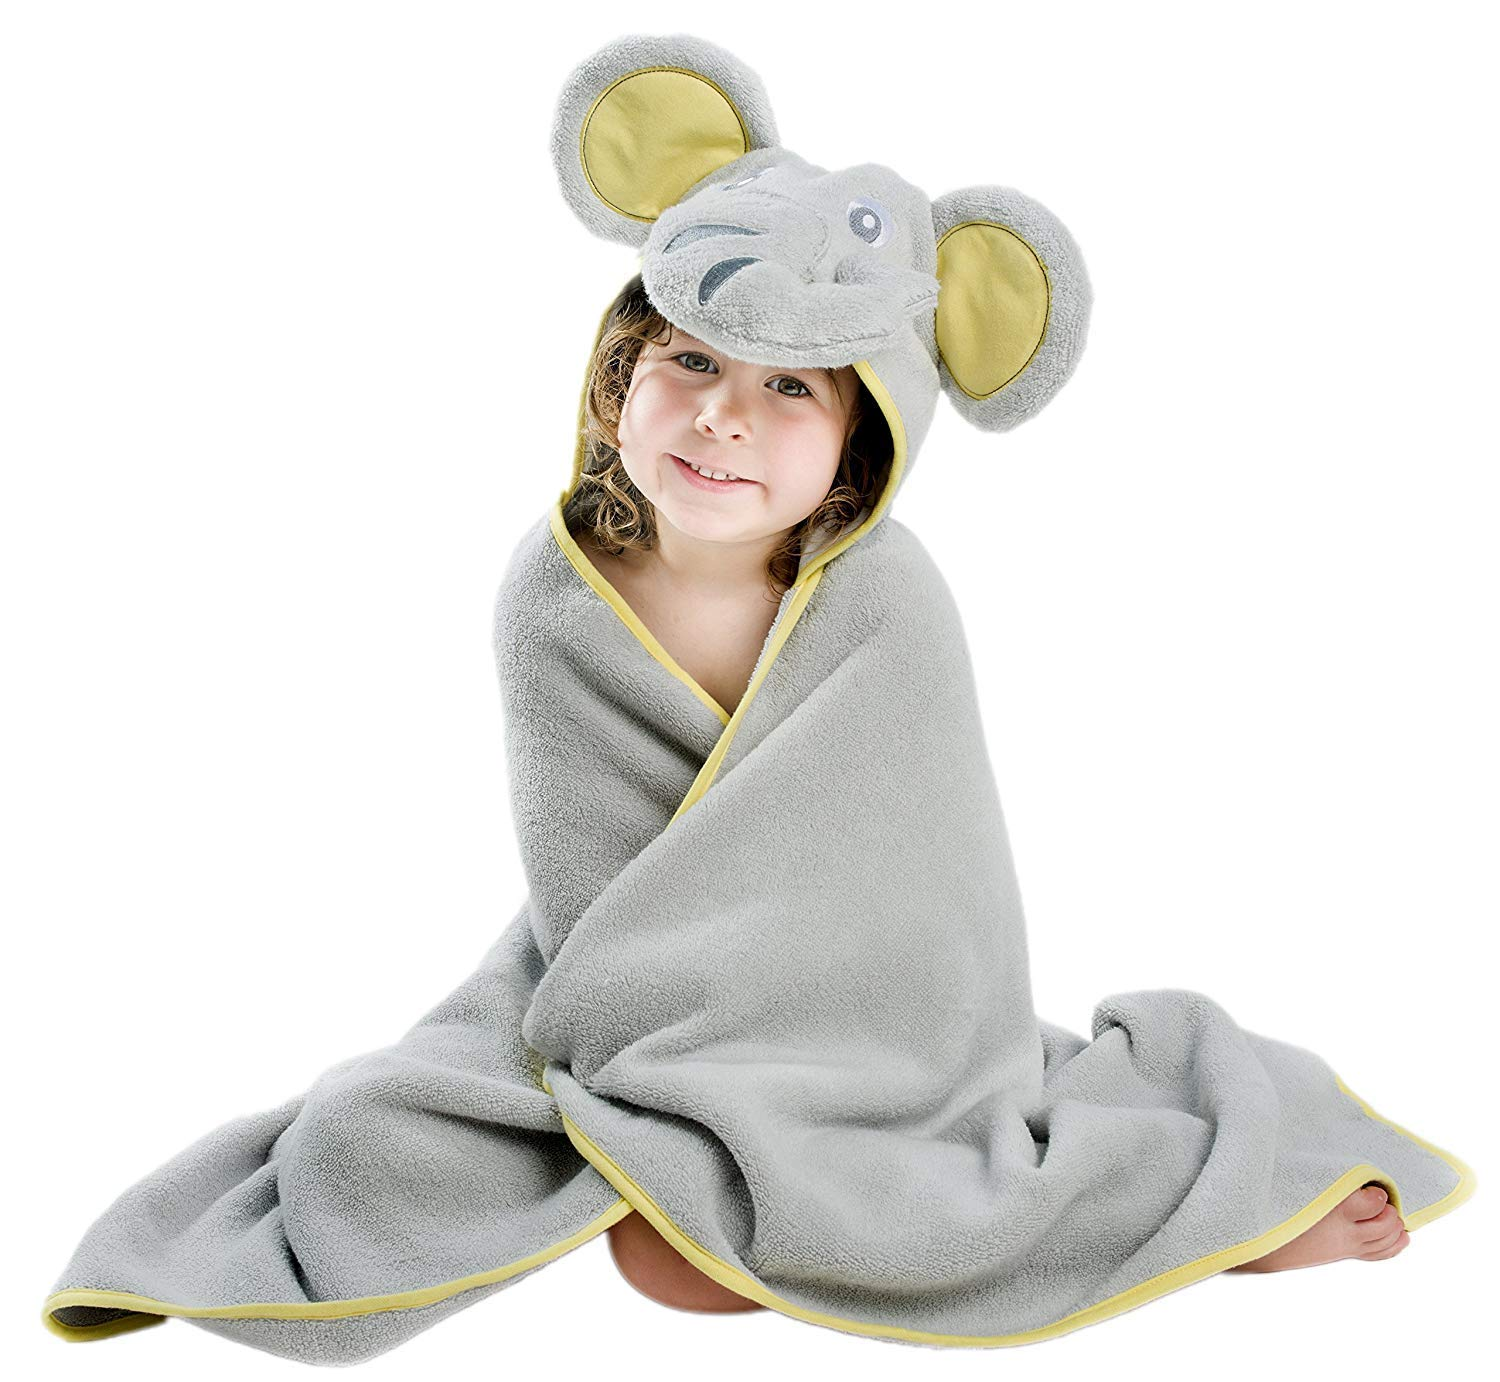 Premium Hooded Towel for Kids | Elephant Design | Ultra Soft and Extra Large | 100% Cotton Bath Towel with Hood for Girls or Boys by Little Tinkers World by Little Tinkers World